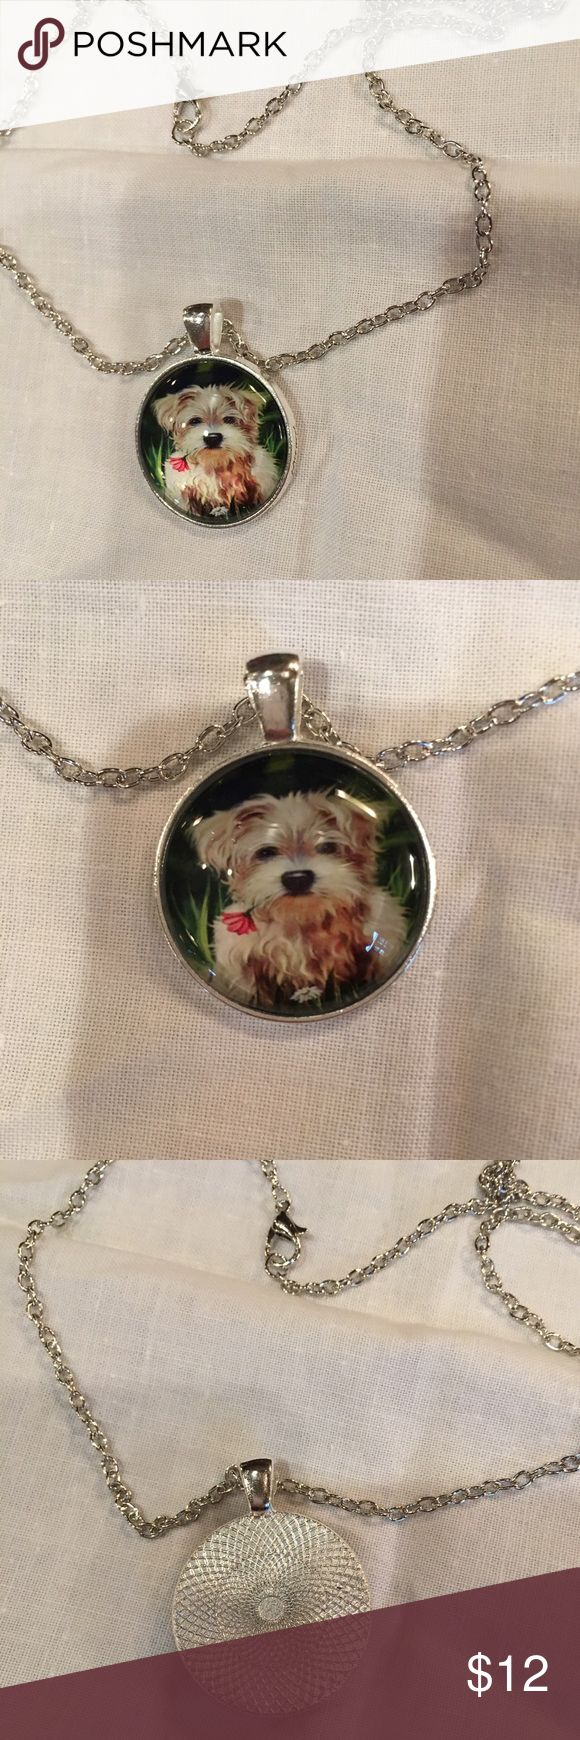 """So sweet Yorkie necklace NWOT So cute little Yorkie  necklace with approximately 18"""" chain N/A Jewelry Necklaces"""